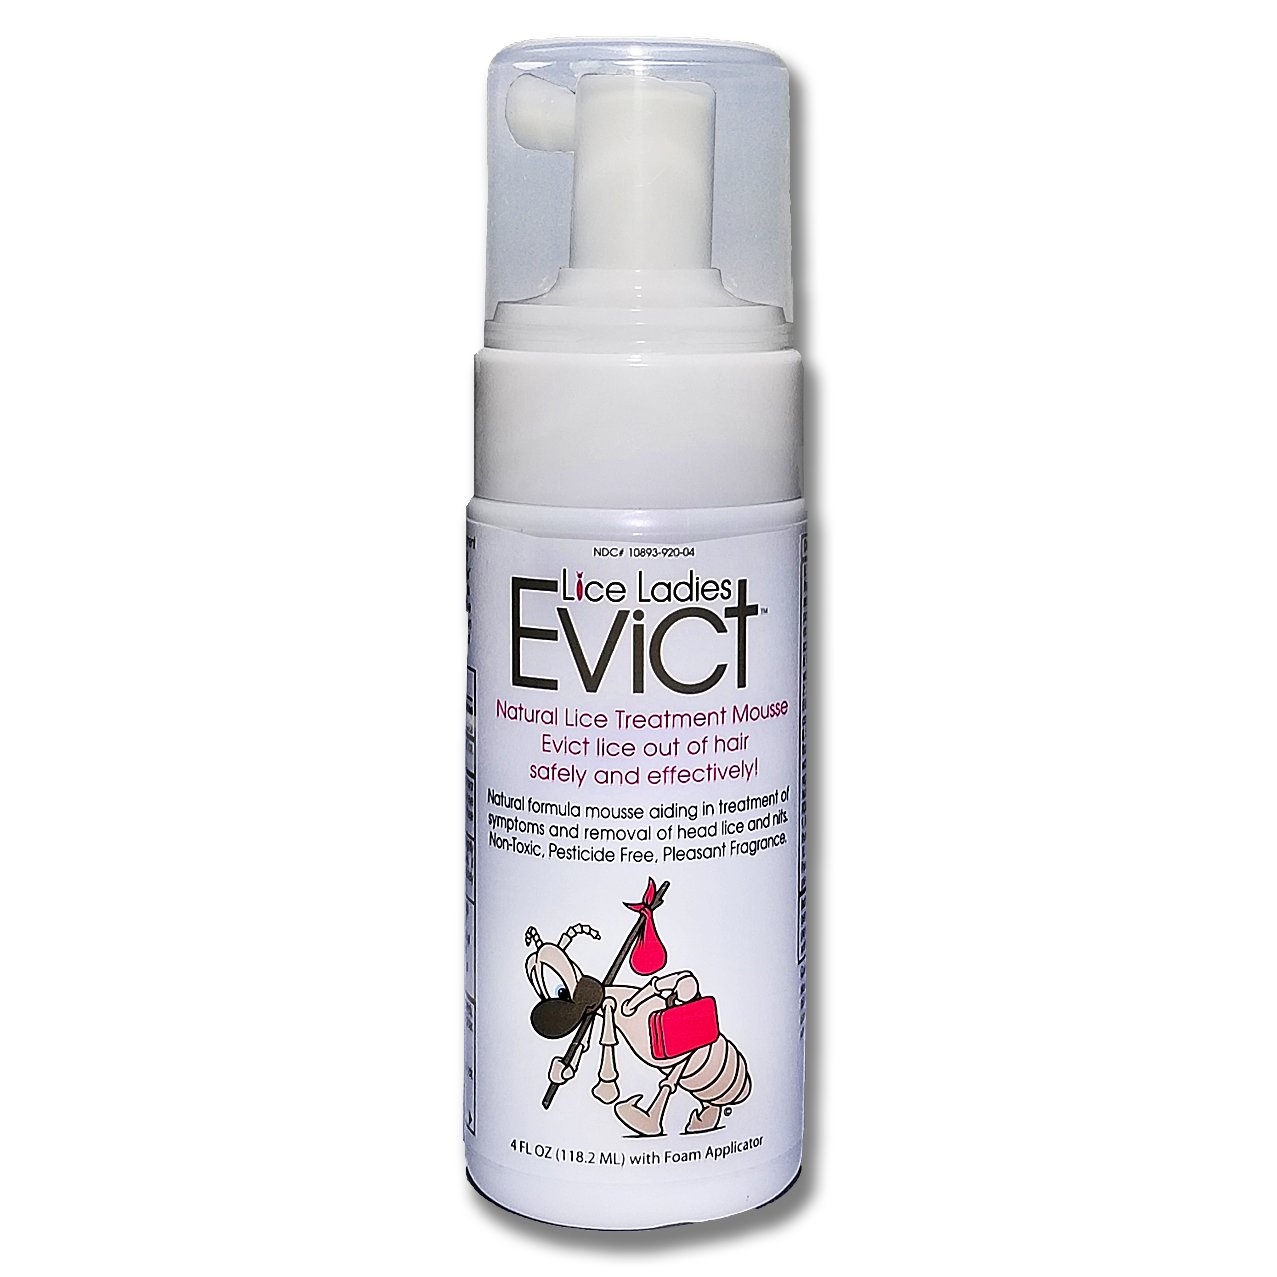 Lice Ladies EVICT / All-Natural, Non-Toxic, Fast Acting Lice Treatment Mousse / homeopathic formula / 1 – 4 oz Foam applicator